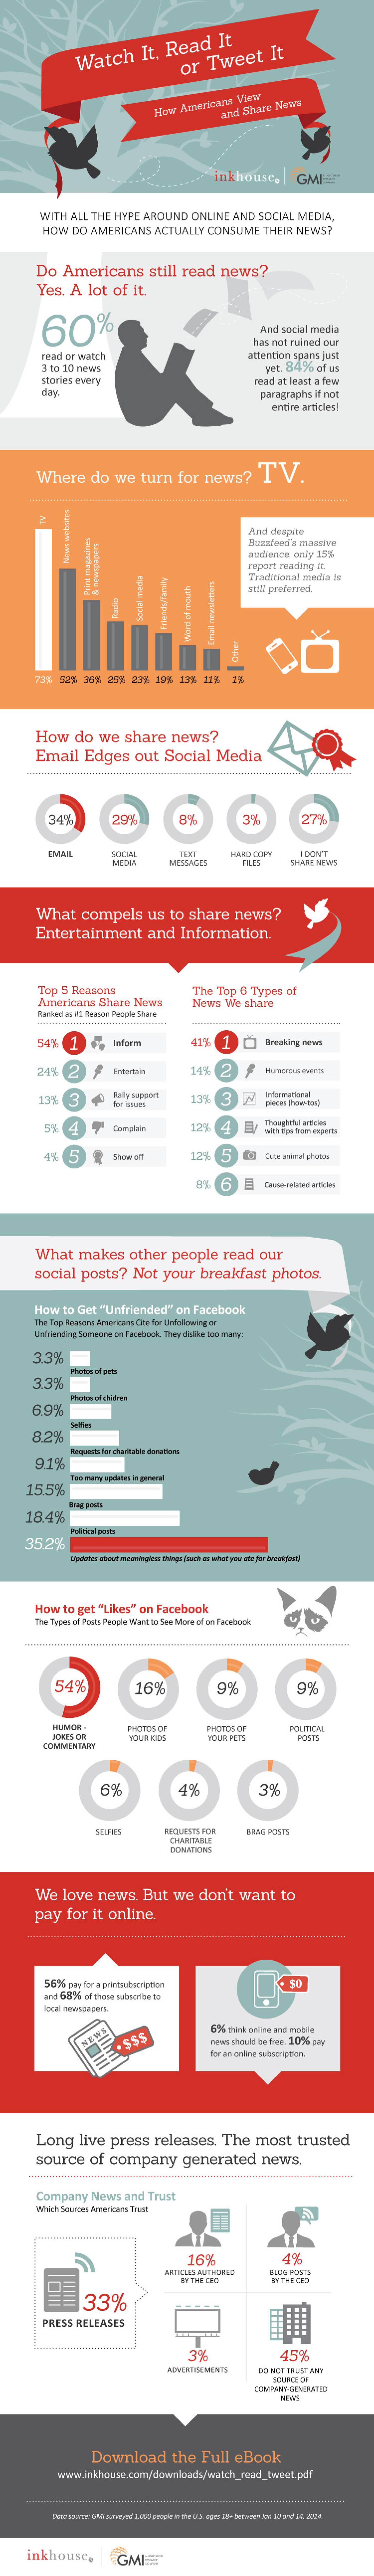 Watch It, Read It or Tweet It: How Americans View and Share News Infographic